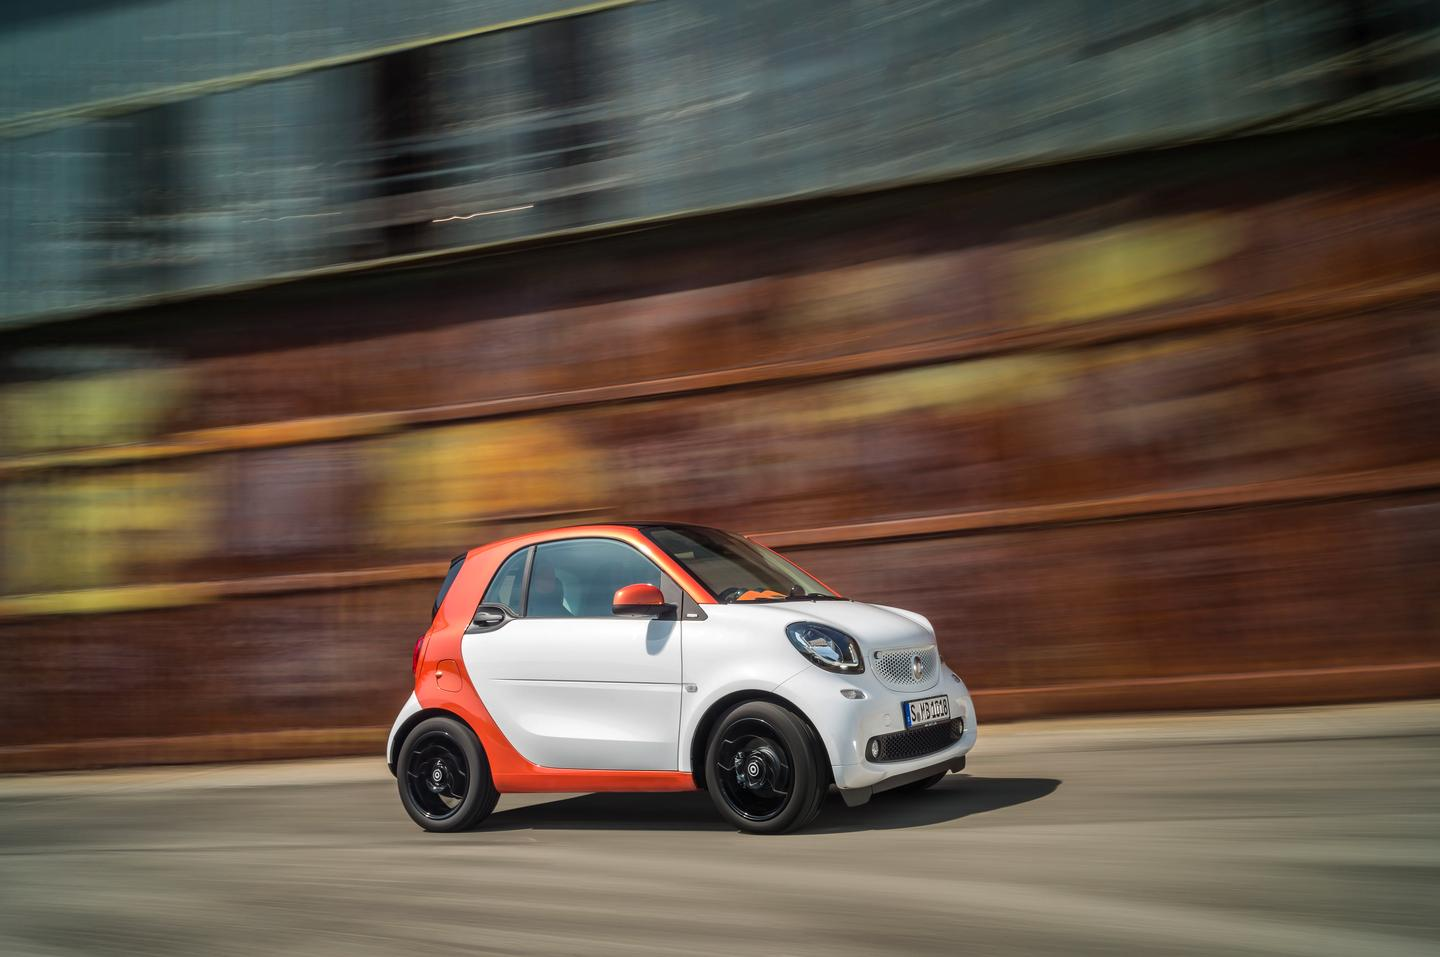 The new smart fortwo comes standard with daytime running lights